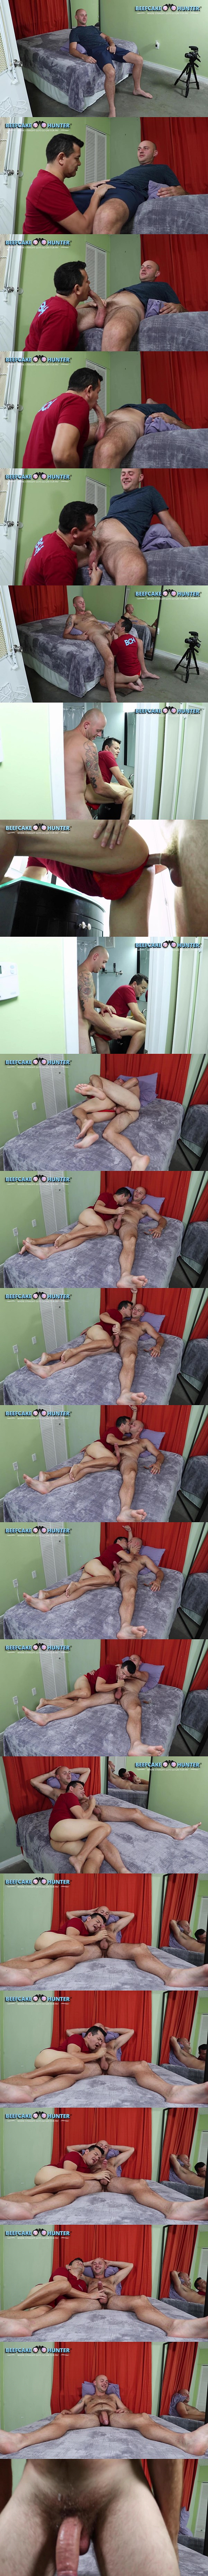 Beefcakehunter - big-cocked Polish straight hunk Justin gets his first man kiss before he fucks Victor's mouth and ass until Victor jerks Justin off in Finally Kissing Justin 02